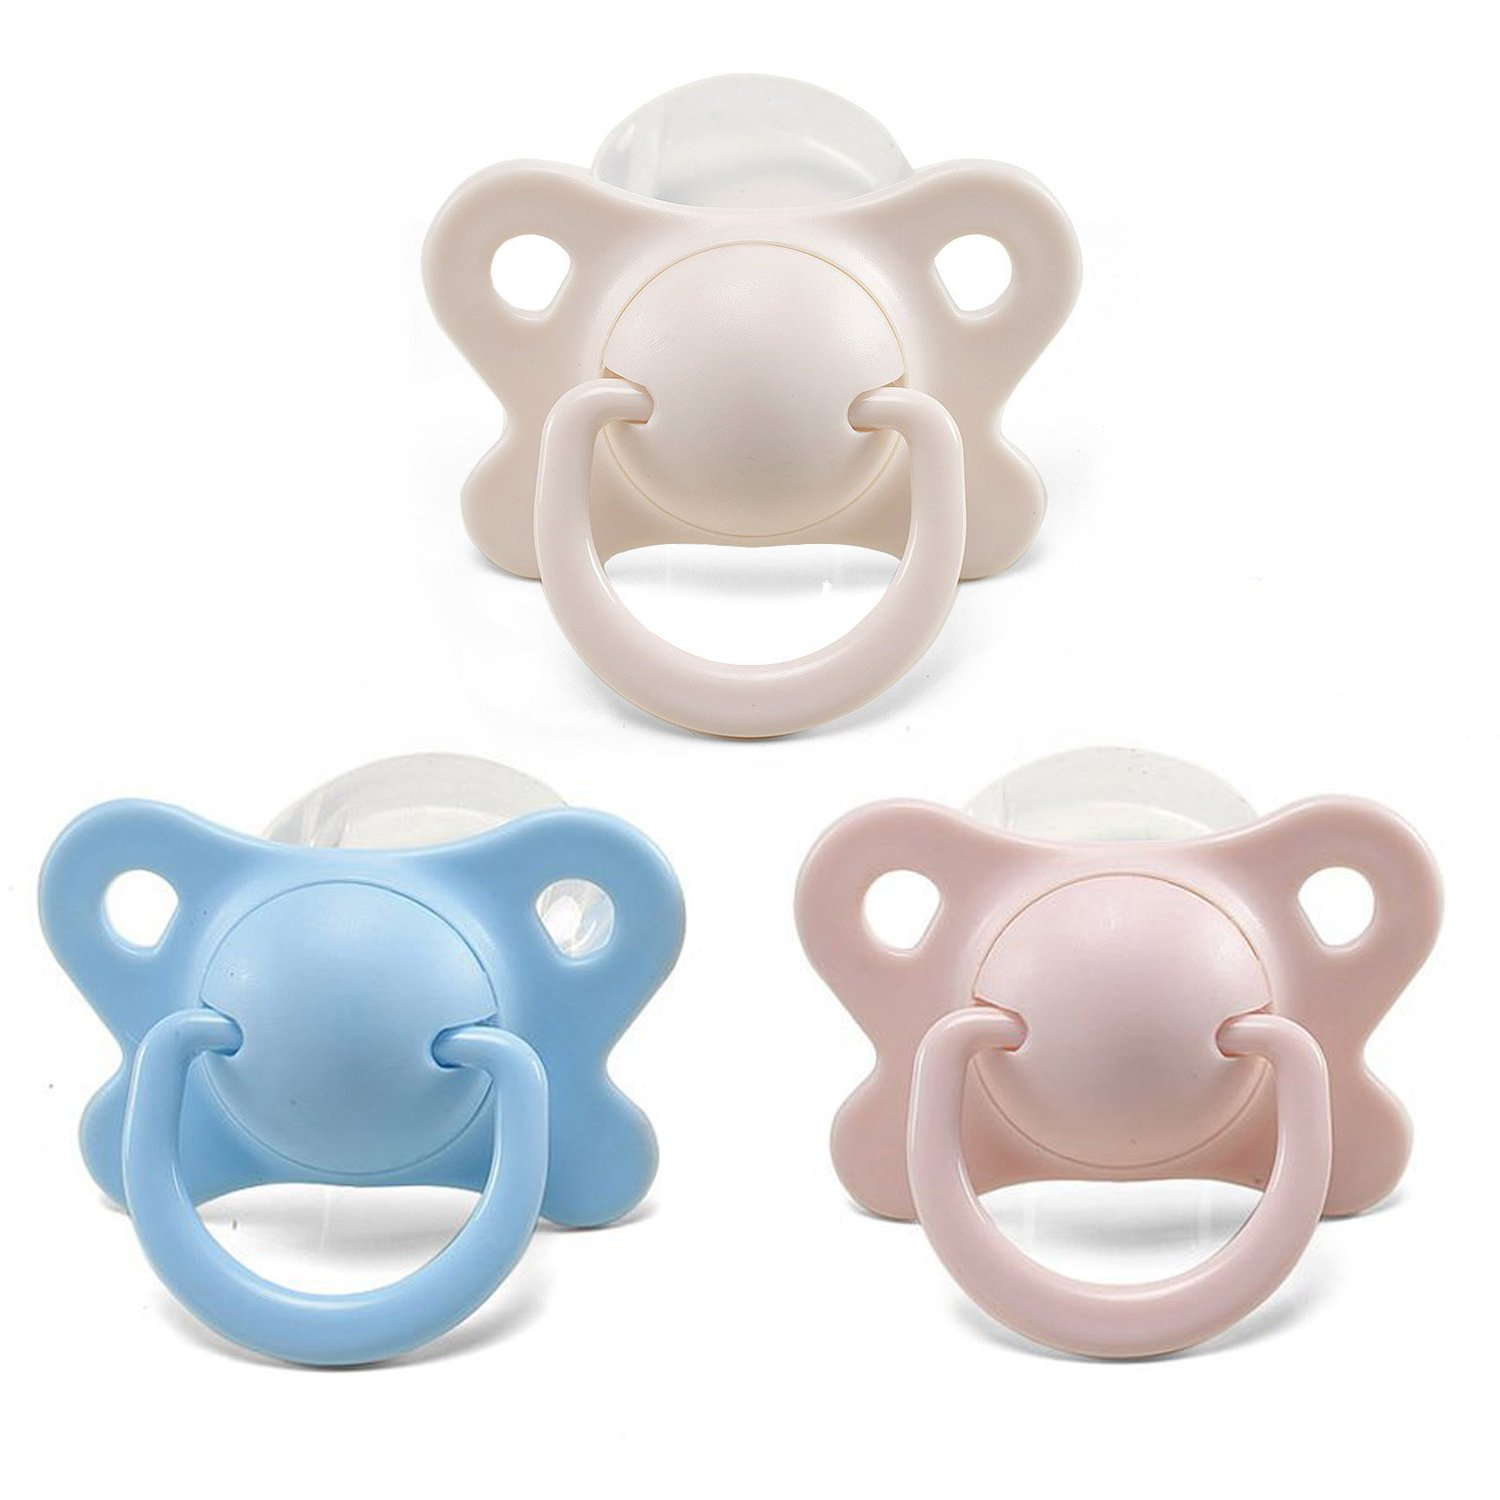 Amazon.com : Littleforbig Adult Sized Pacifier/Dummy for Adult Baby ABDL -  Butterfly Kiss Binky 3 Pacifiers Pack : Baby